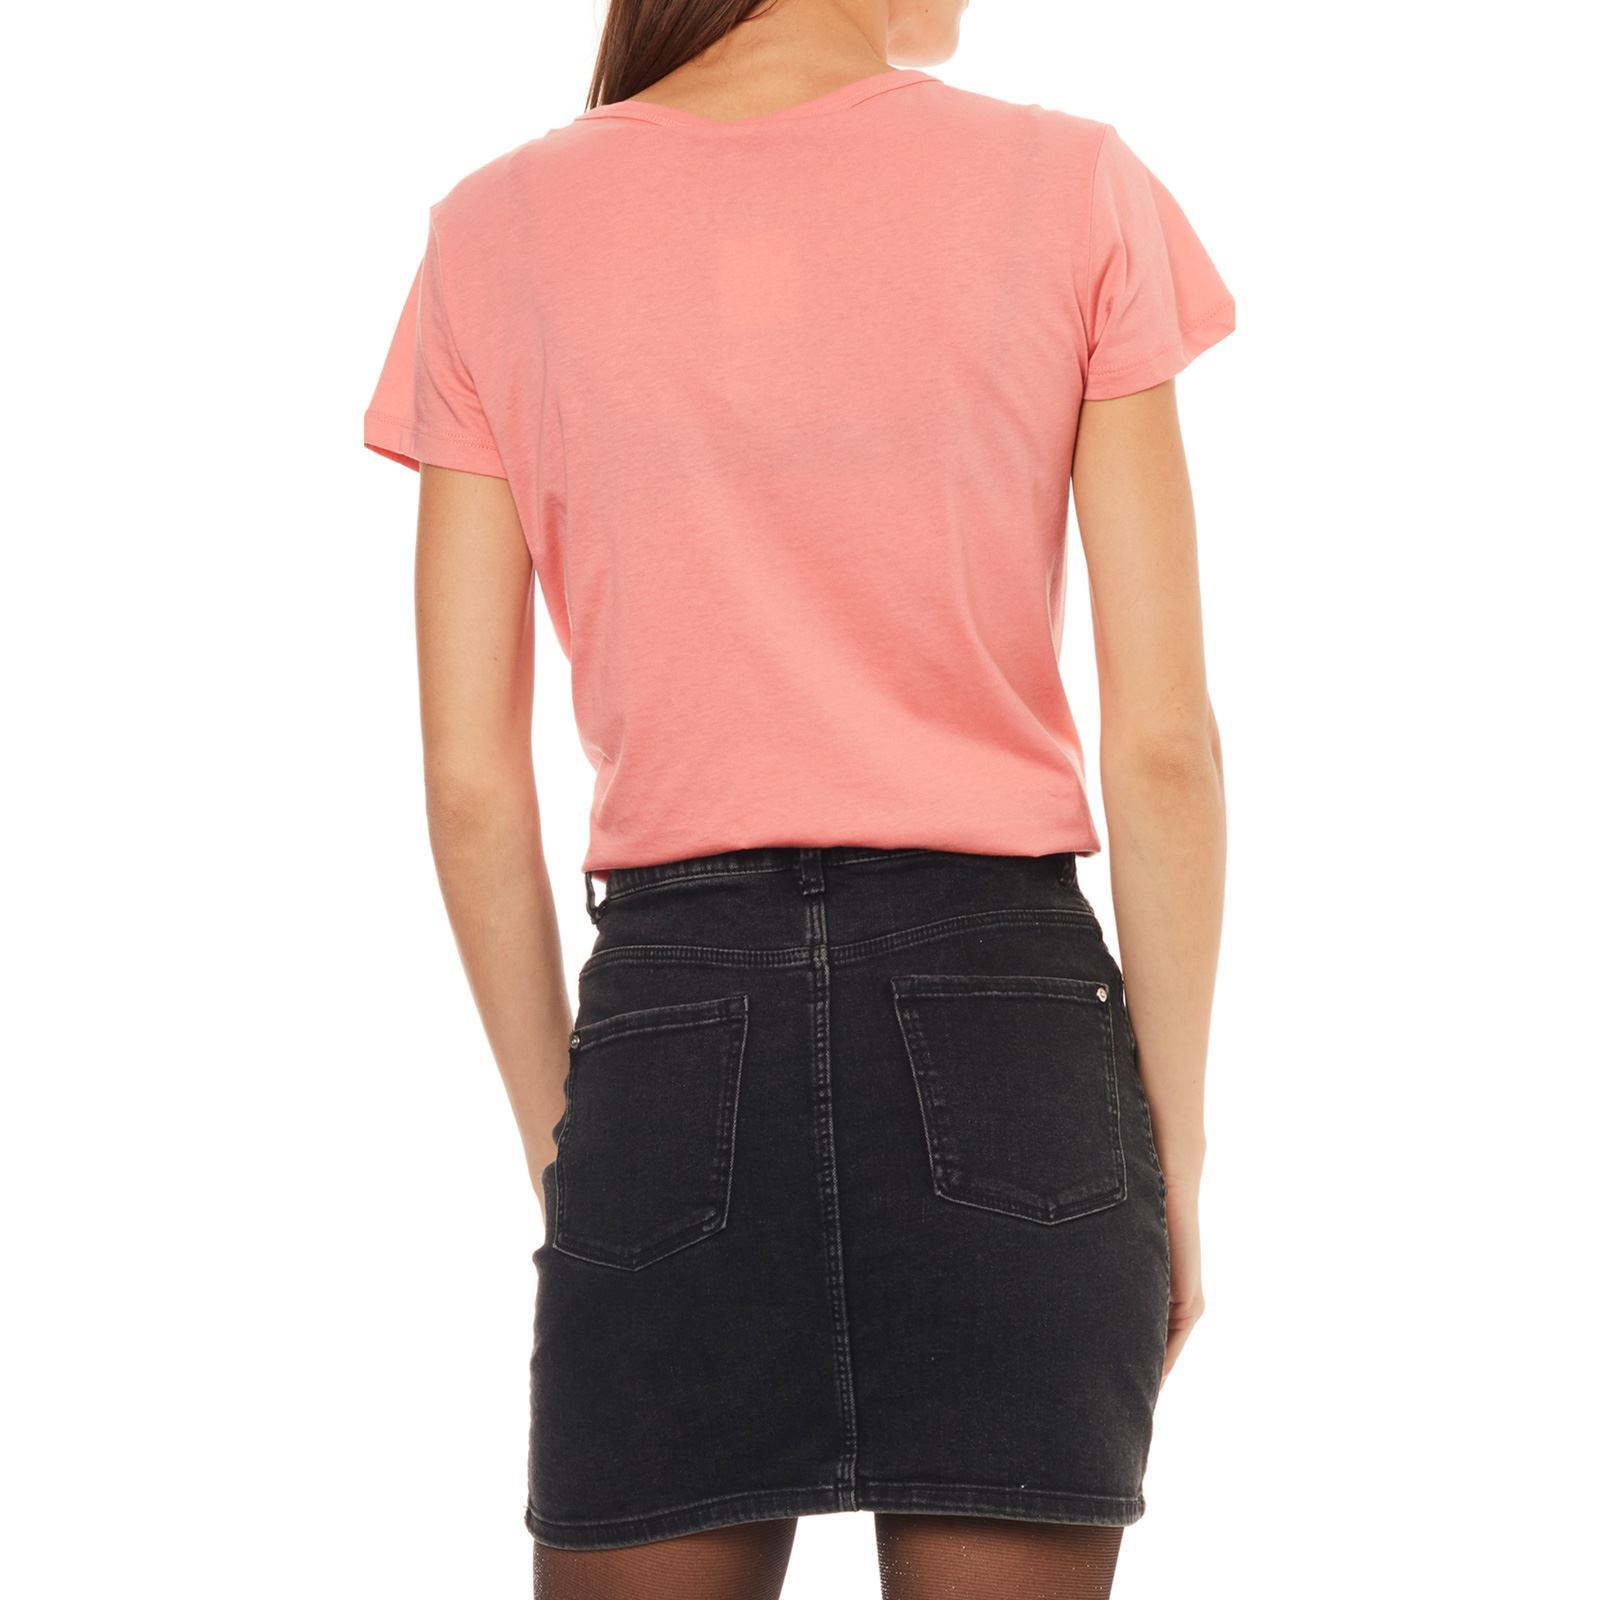 Manches G Star Rose T shirt Courtes wYOqpRY